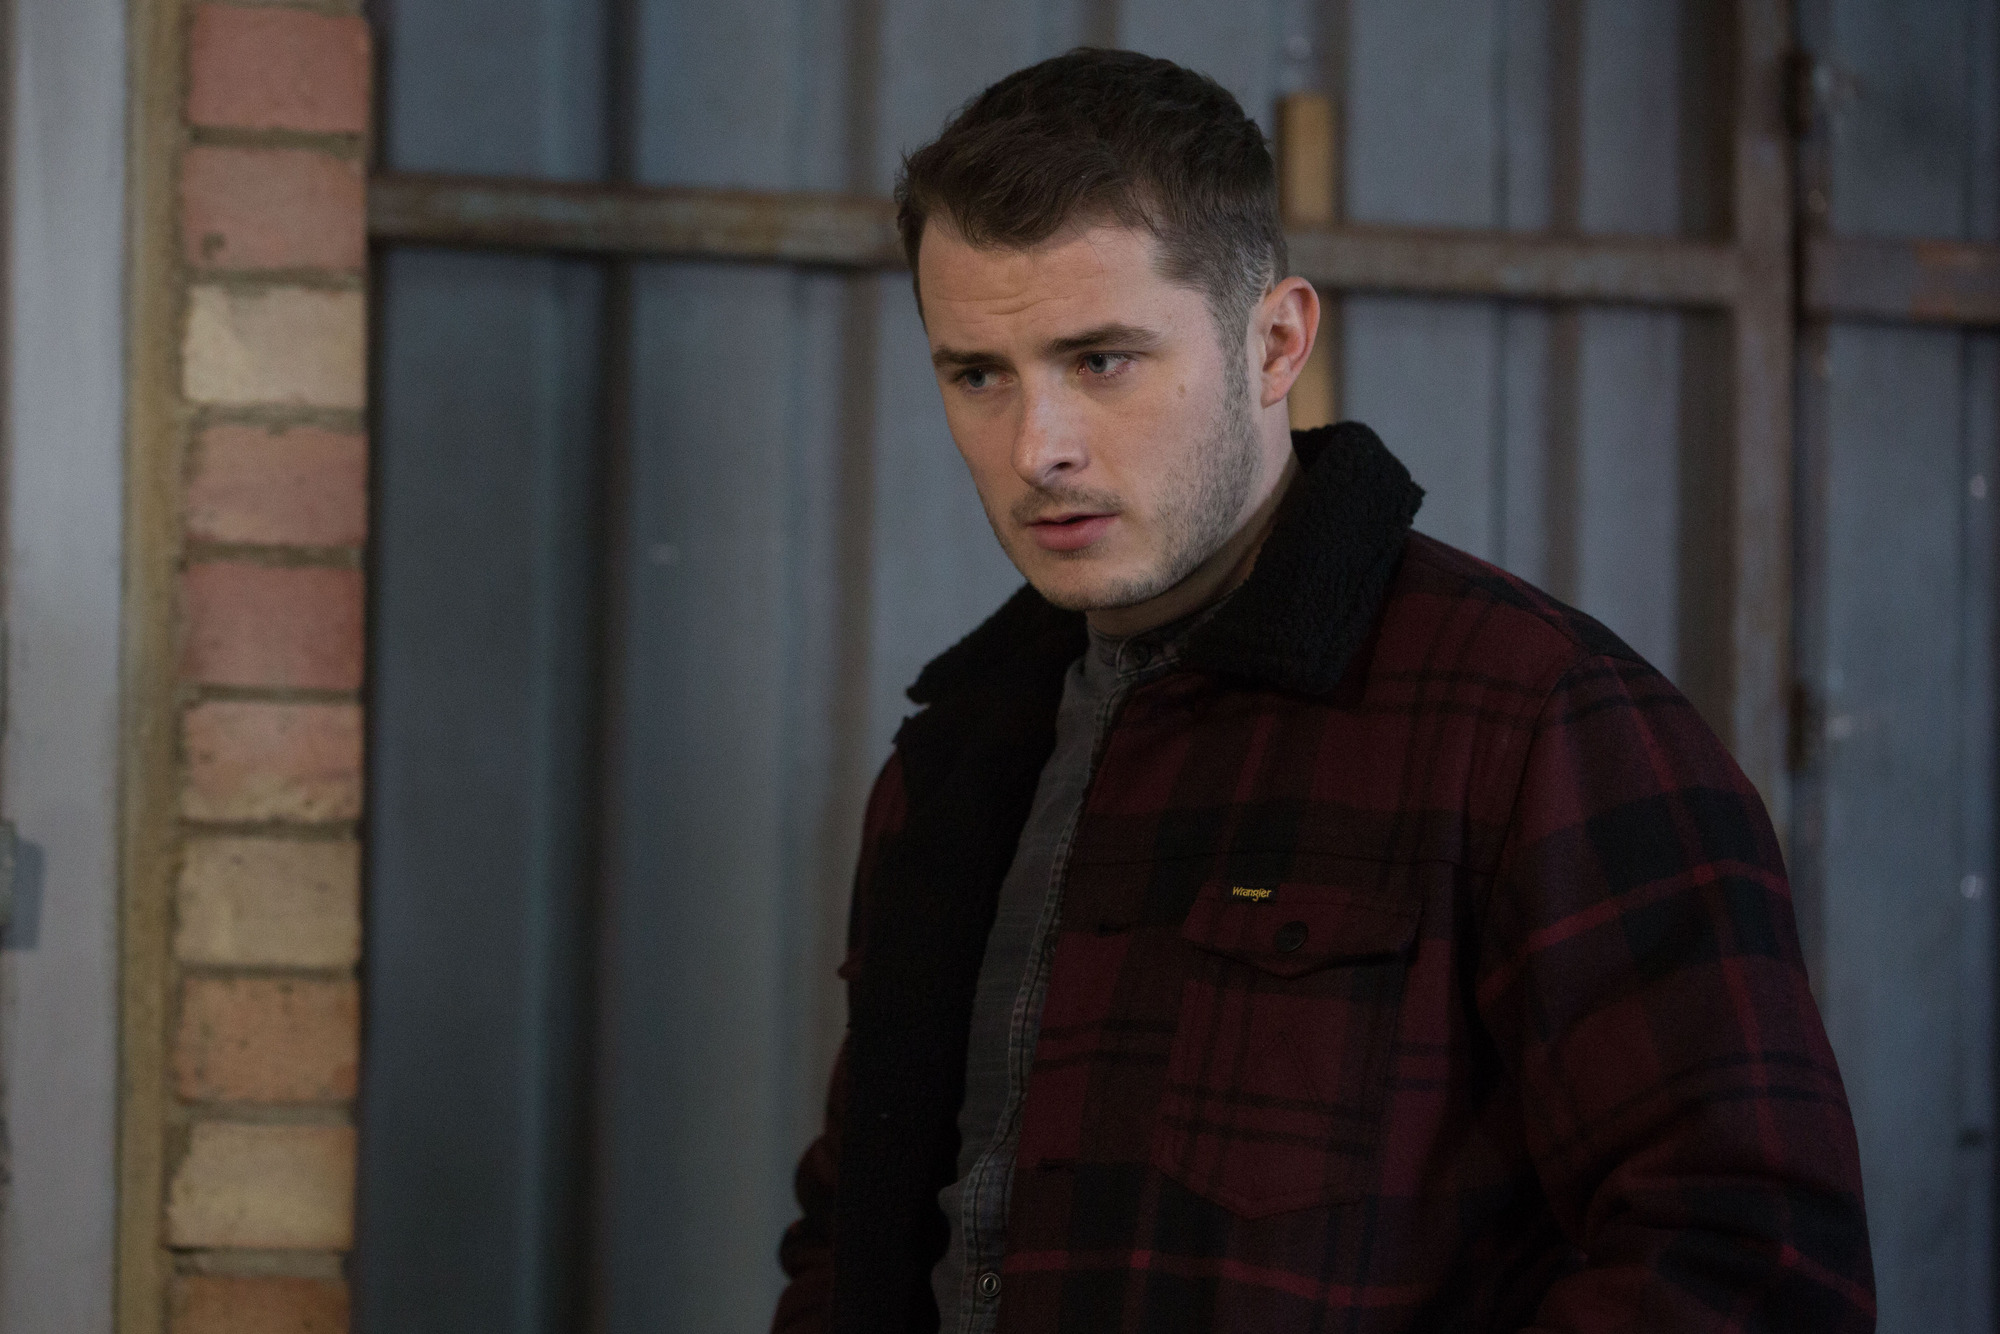 EastEnders star Max Bowden didn't know he'd been hired to play Ben Mitchell